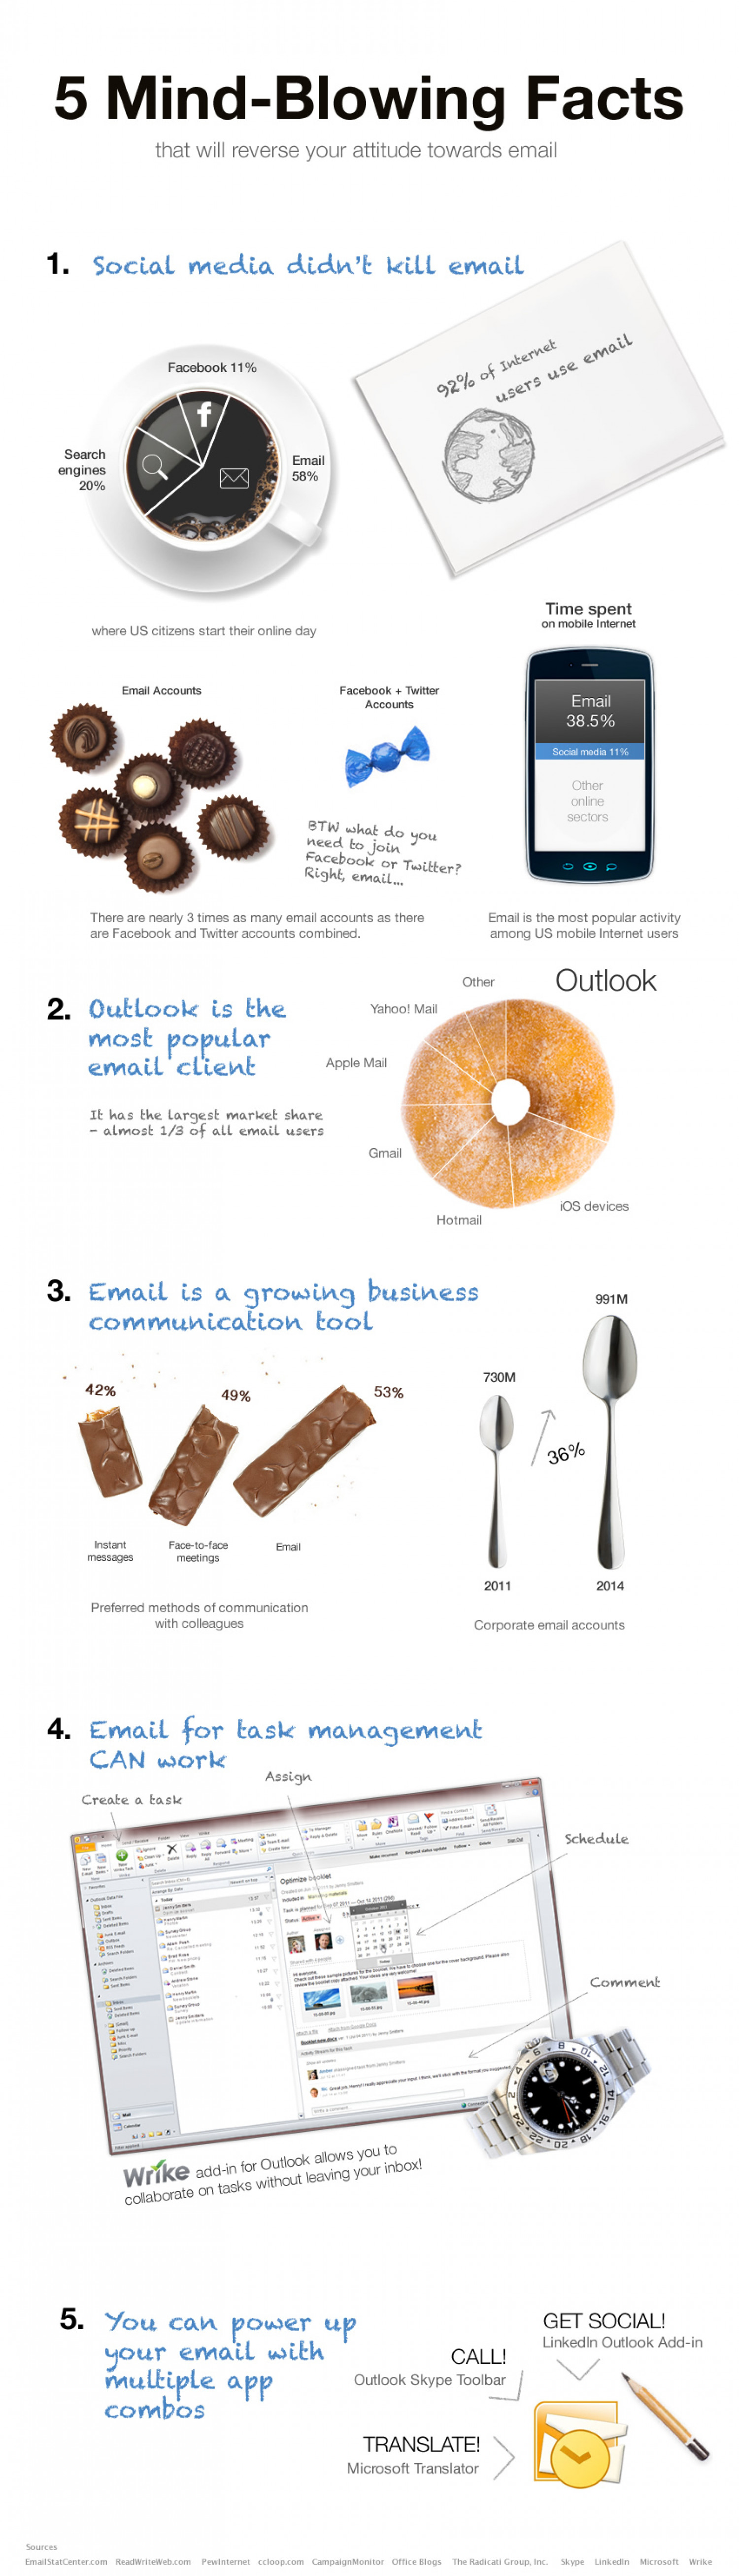 5 mind-blowing facts that will reverse your attitude towards email Infographic